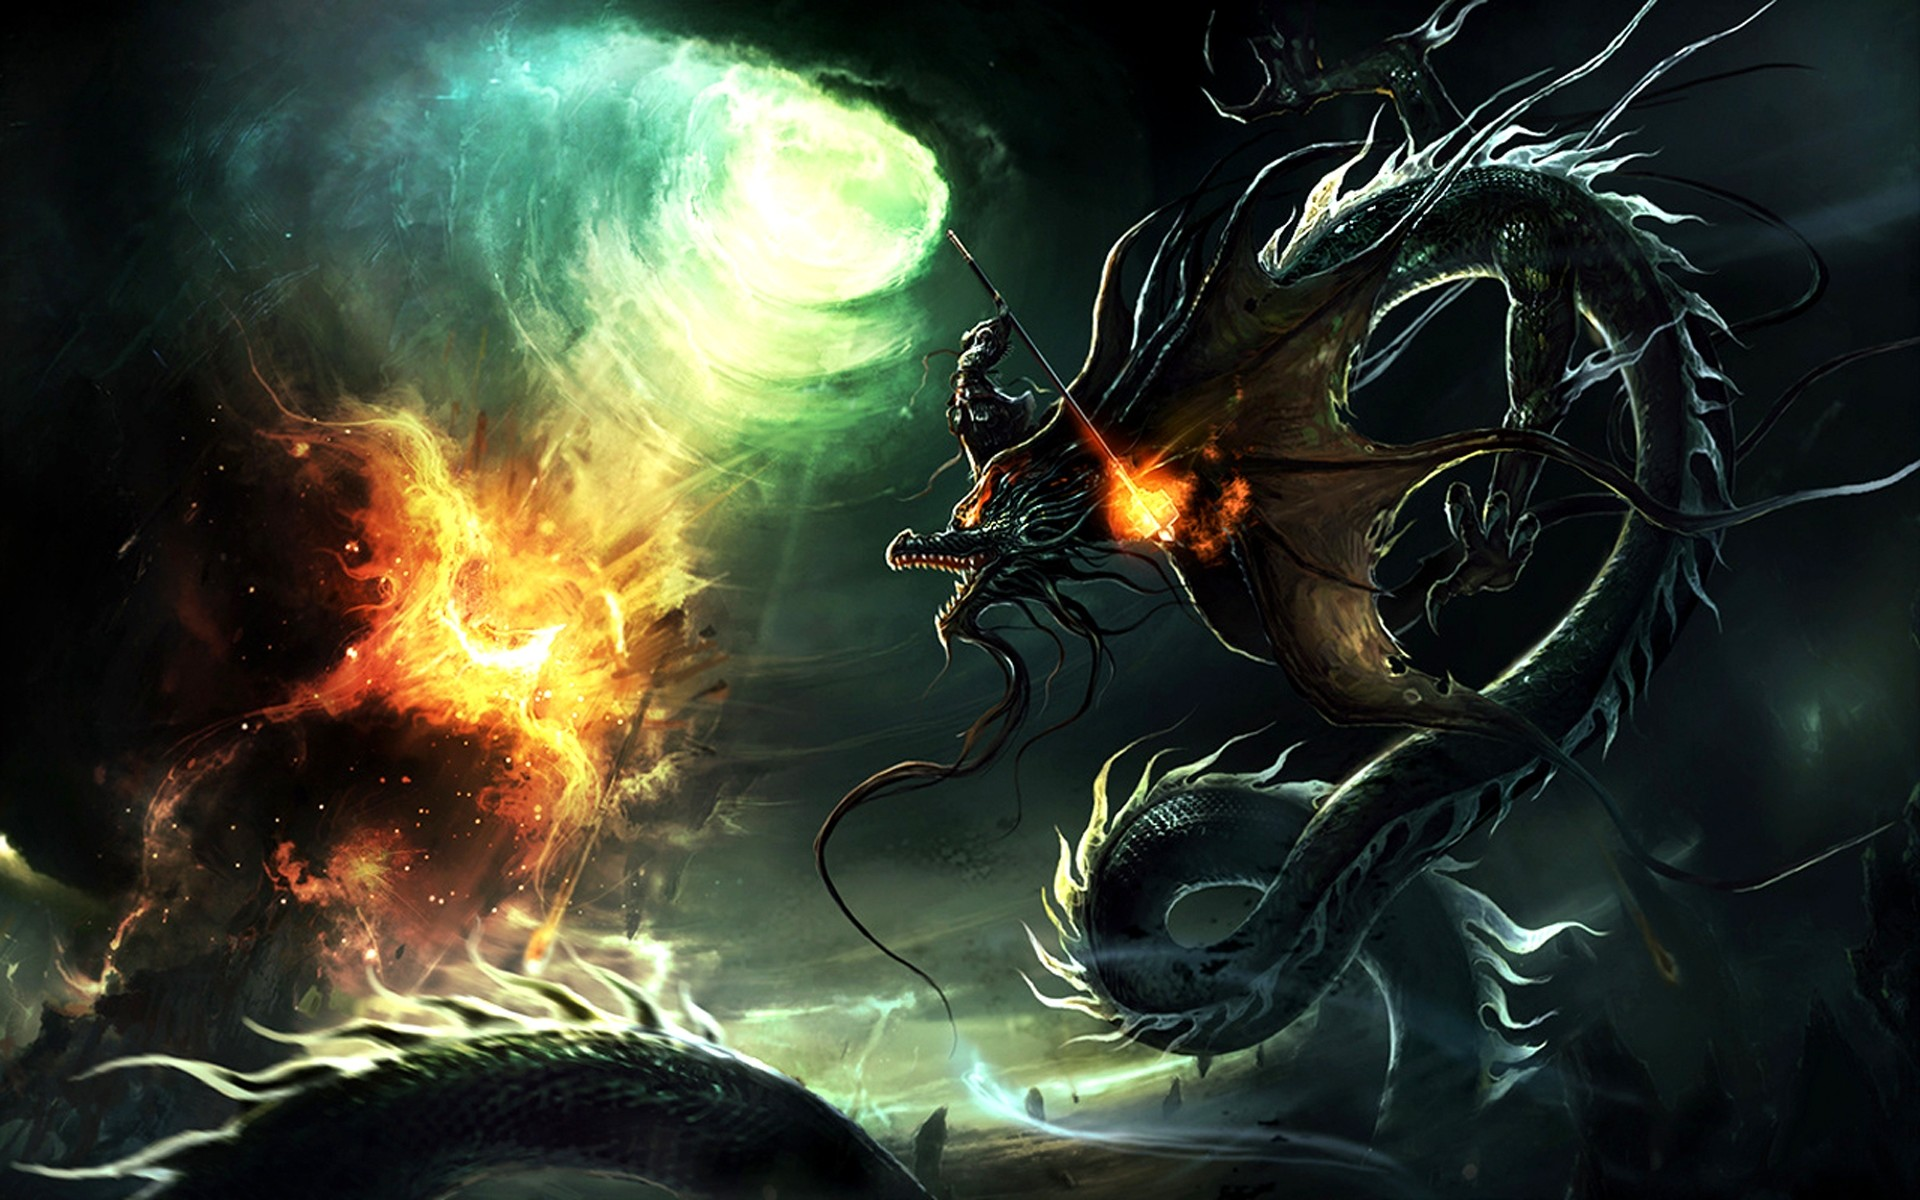 Epic dragon wallpaper backgrounds for epic dragon desktop background www 8backgrounds com voltagebd Images